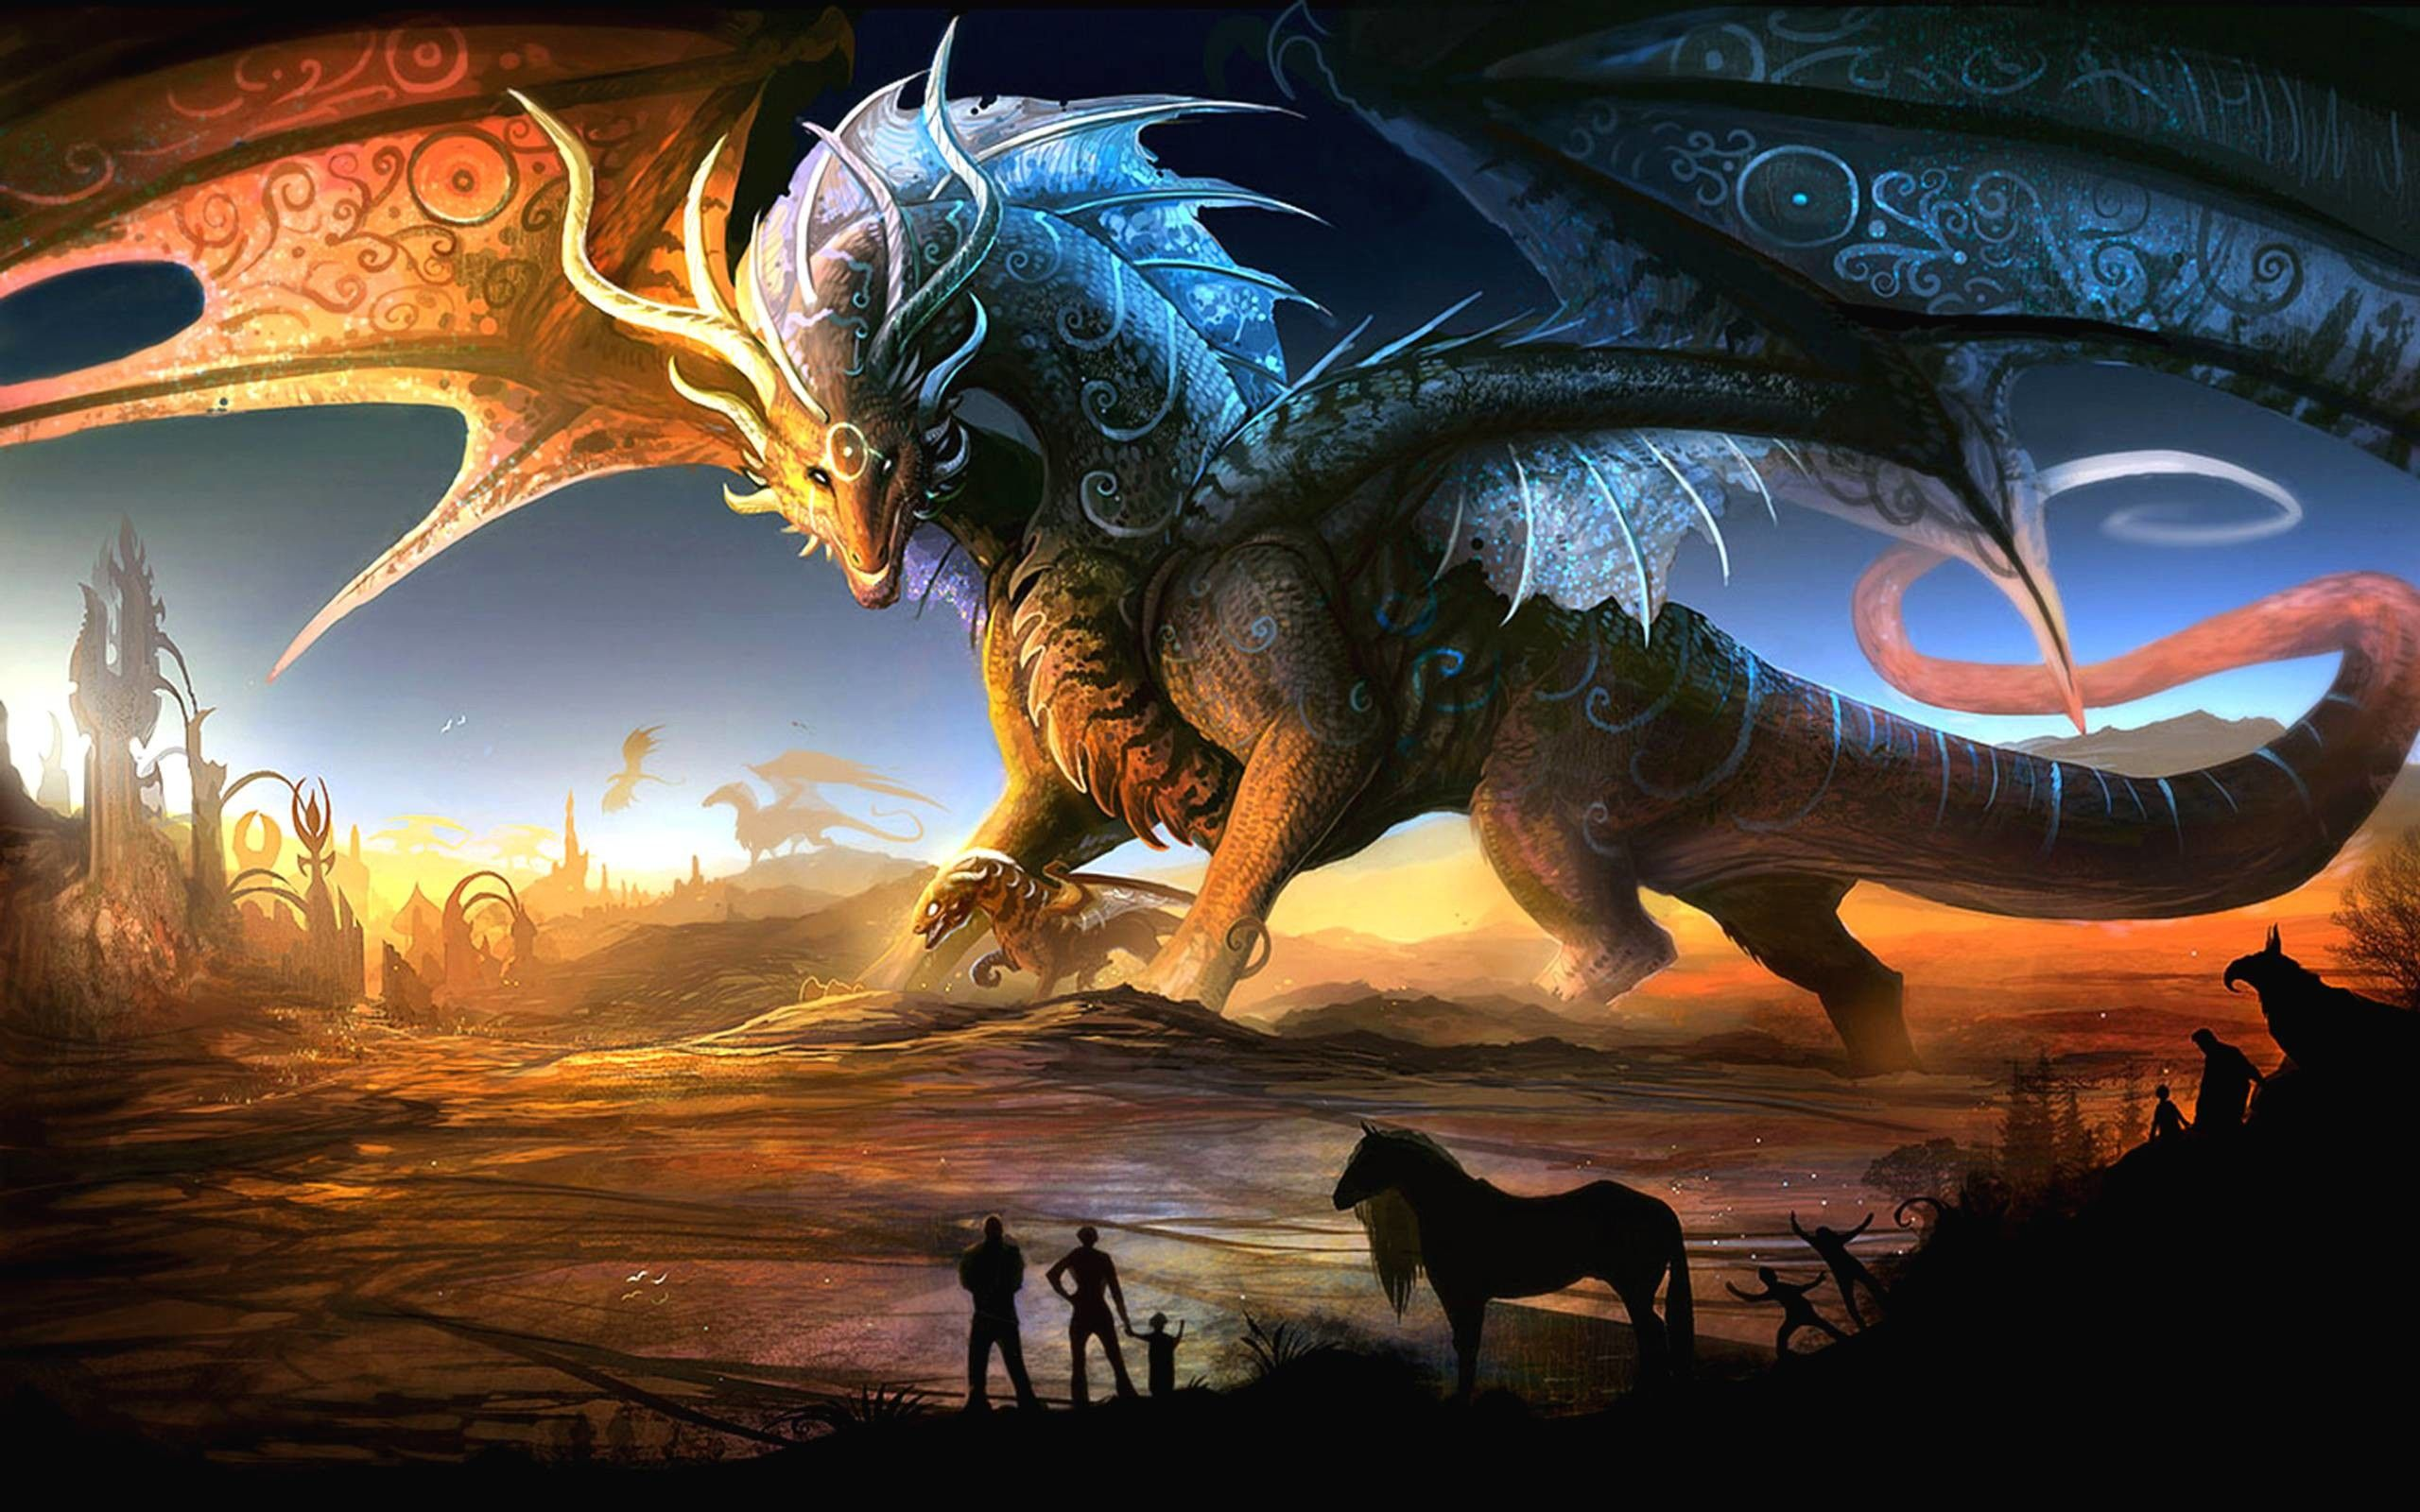 Epic Dragon Wallpapers Top Free Epic Dragon Backgrounds Wallpaperaccess